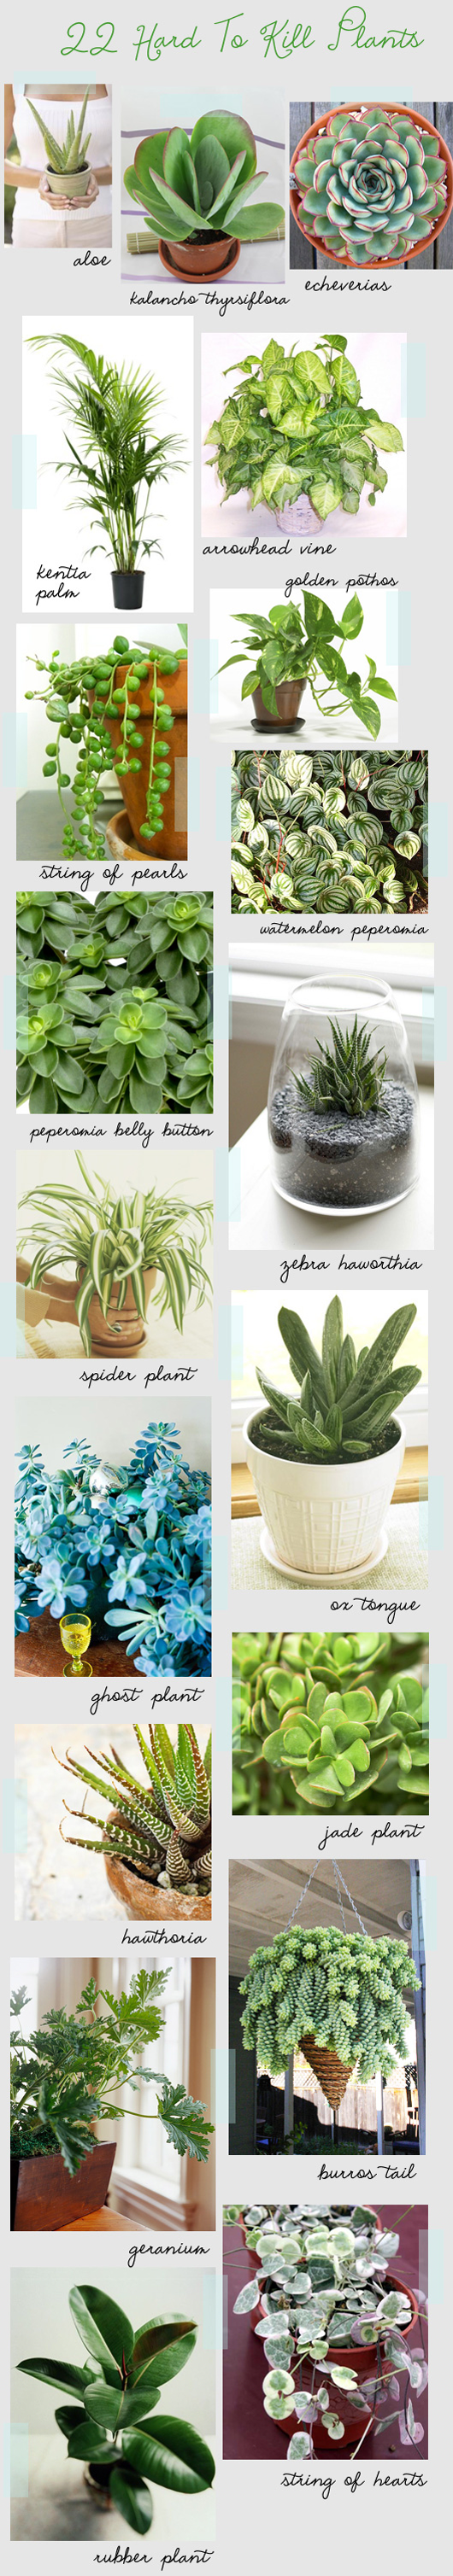 These plants are all hard to kill (important info for people who do NOT have green thumbs!)